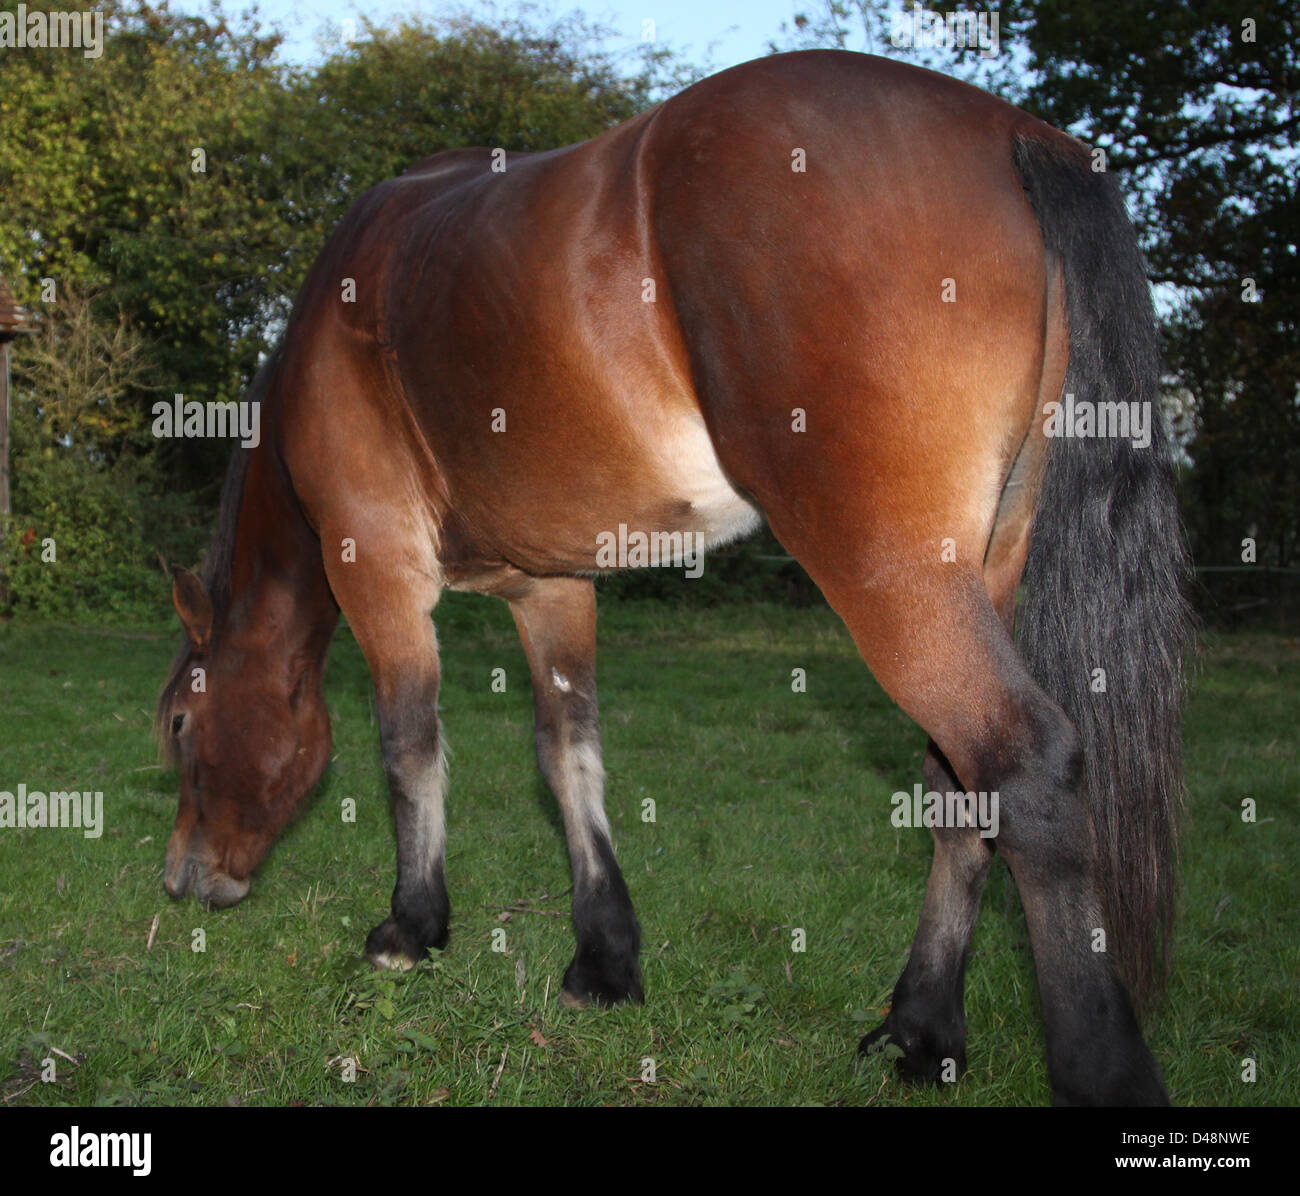 Bay Welsh Cob grazing in a field at dusk - Stock Image